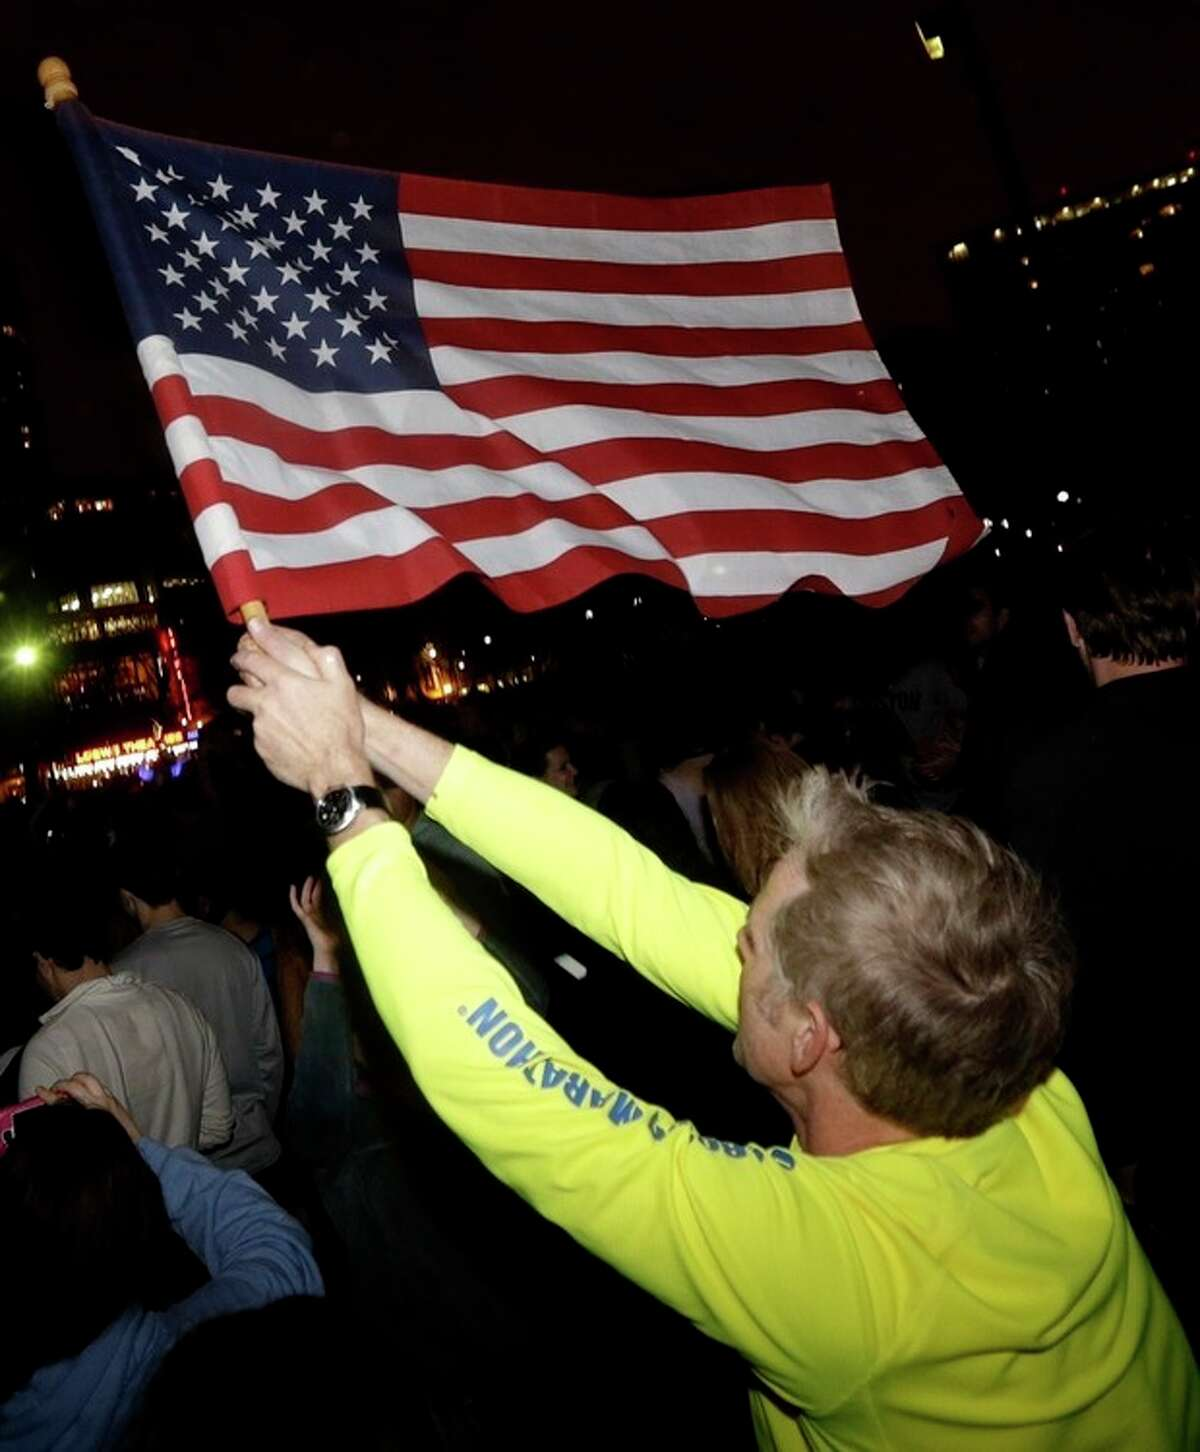 Frank McGillin, who ran three Boston Marathons, waves a U.S. flag as a crowd reacts to news of the arrest of one of the Boston Marathon bombing suspects during a celebration at Boston Common, Friday, April 19, 2013, in Boston. Boston Marathon bombing suspect Dzhokhar Tsarnaev was captured in Watertown, Mass. The 19-year-old college student wanted in the bombings was taken into custody Friday evening after a manhunt that left the city virtually paralyzed and his older brother and accomplice dead. (AP Photo/Julio Cortez)